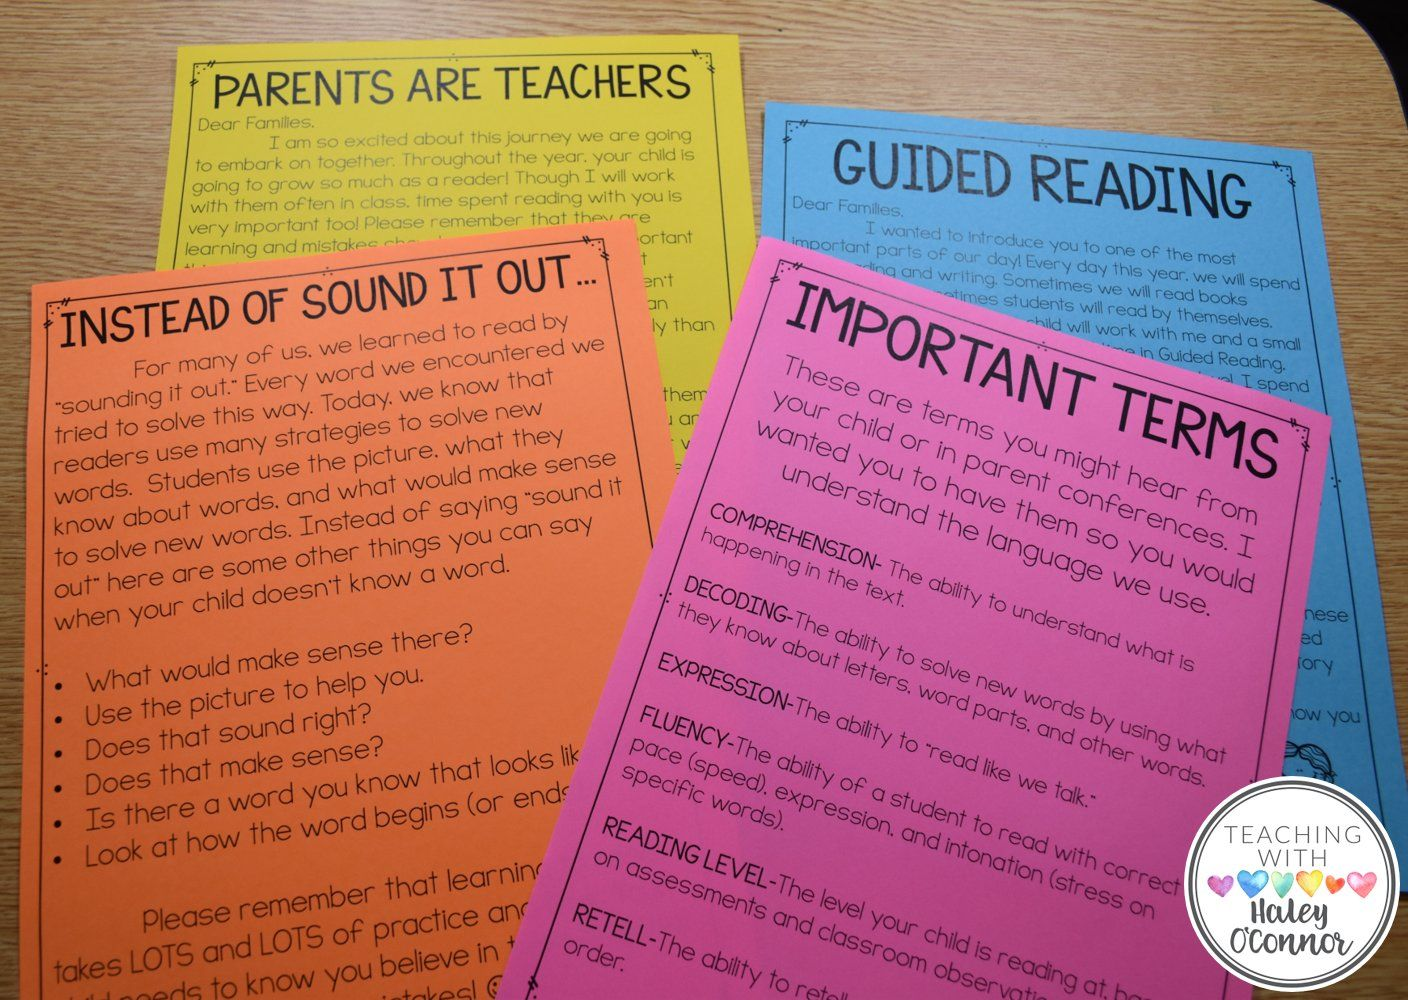 Parent Resources for Guided Reading